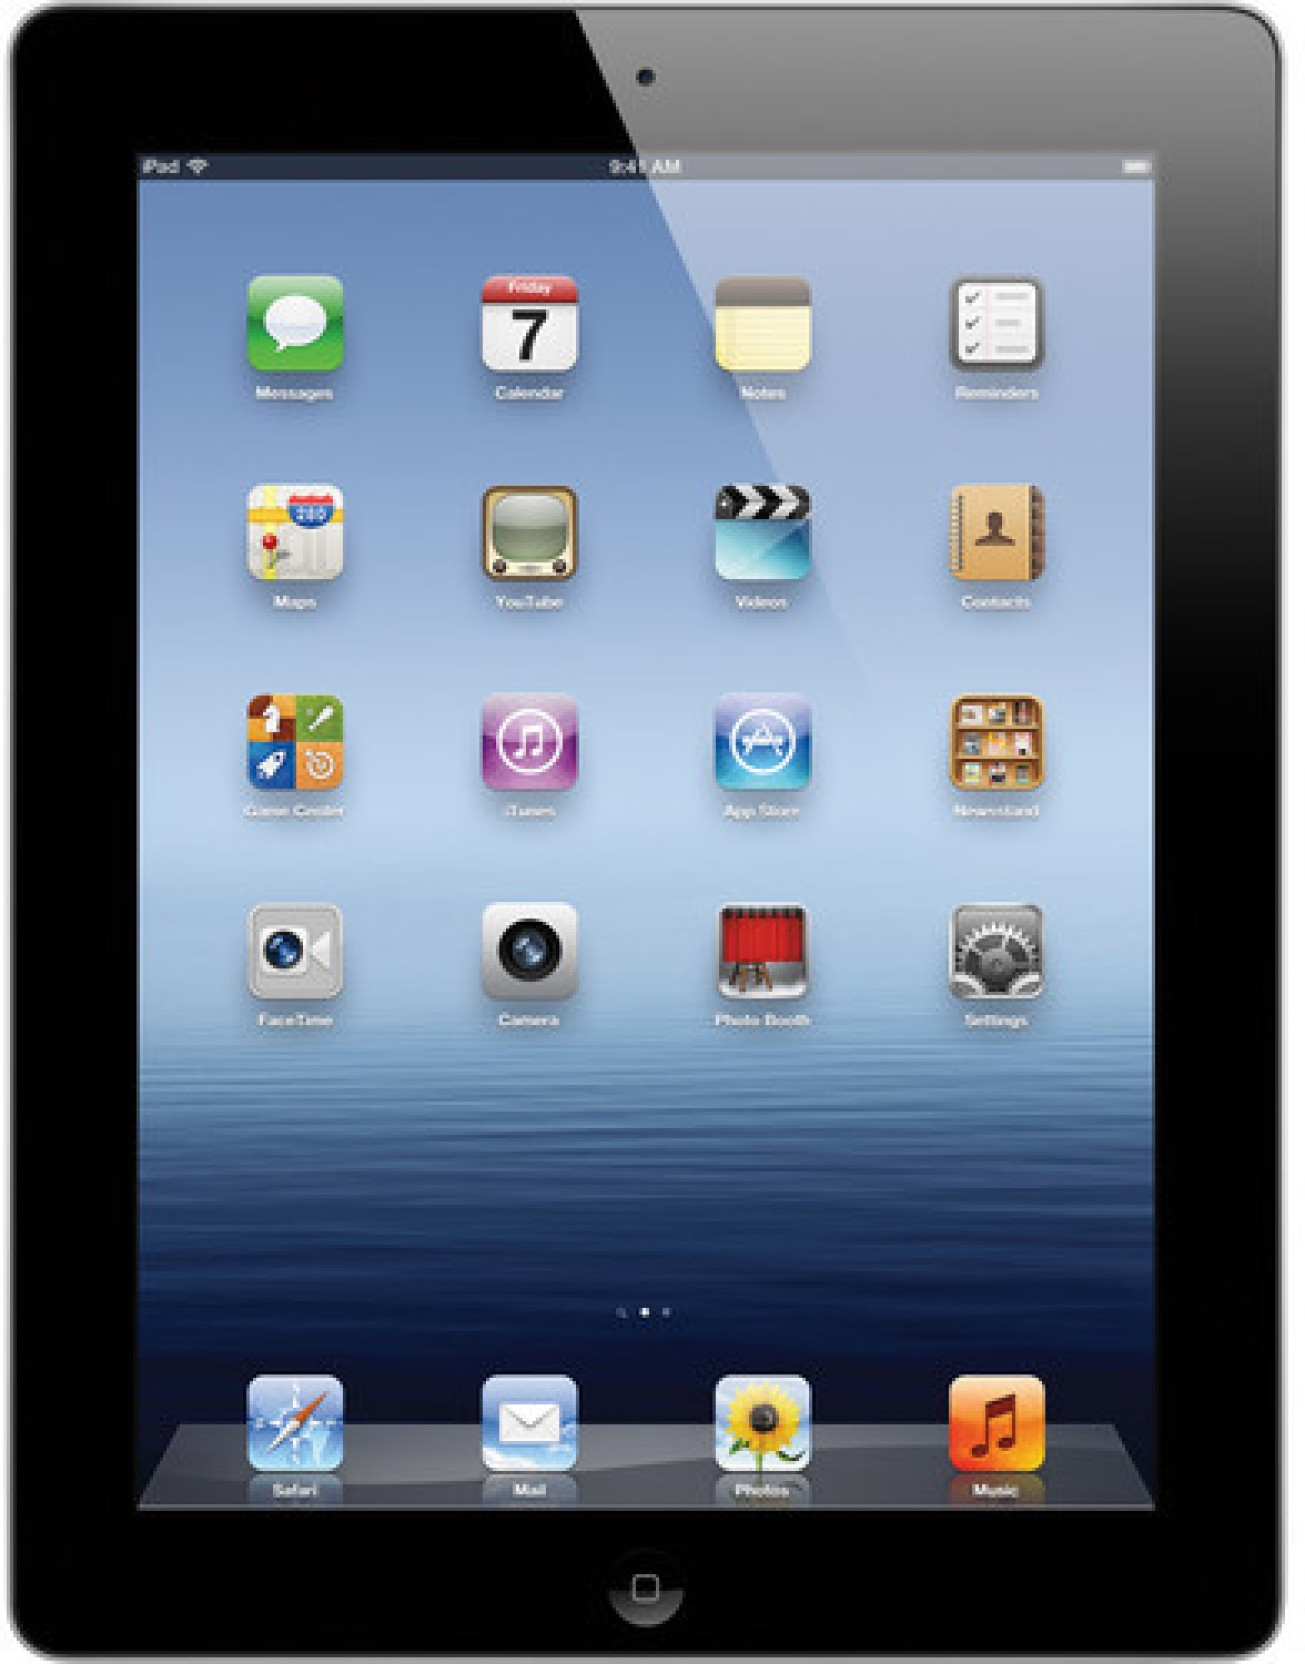 Apple Ipad 4th Gen 16 Gb 97 Inch With Wi Fi Only Black Price In Hp Slate 7 Voicetab 3g Silver Compare